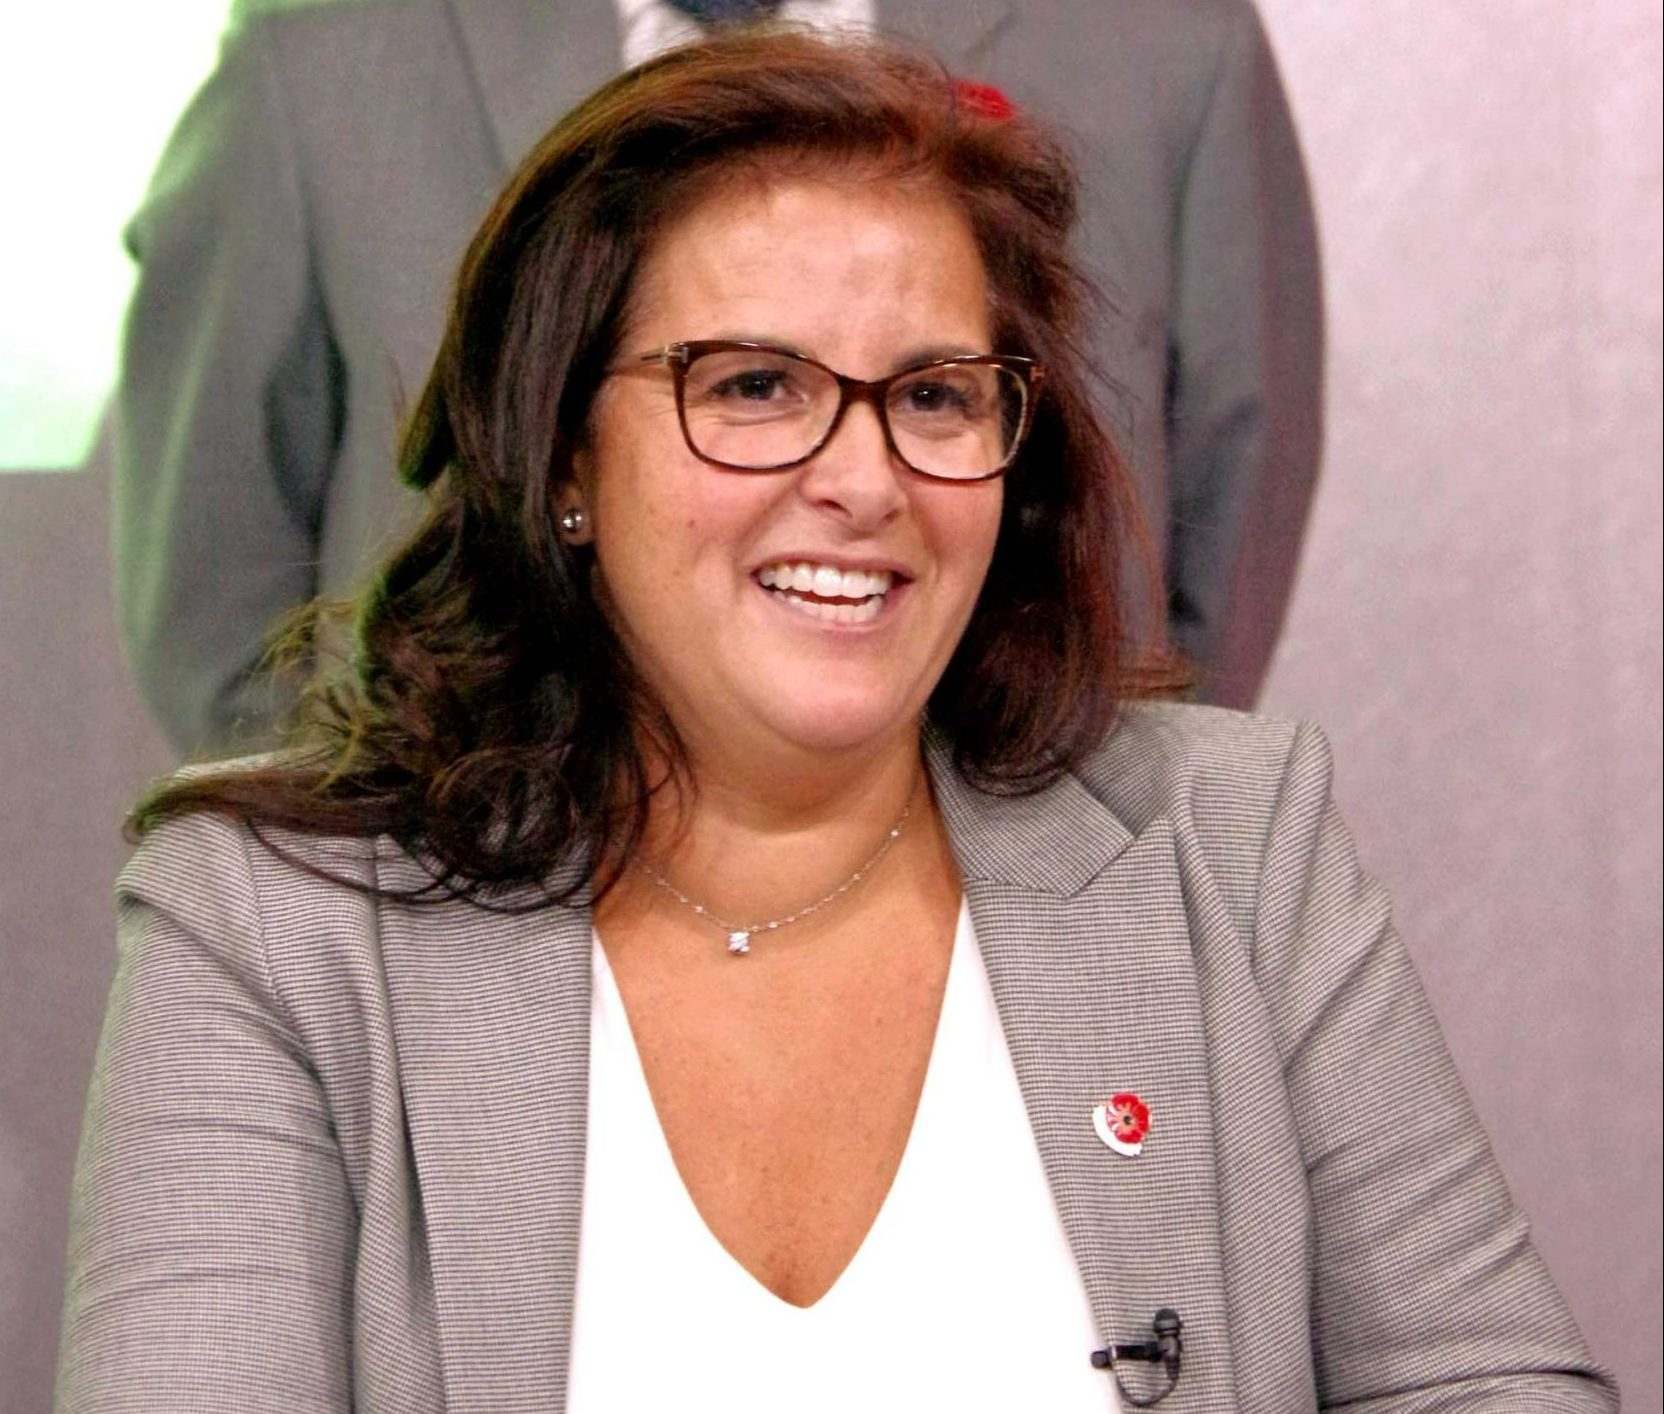 Sonia Baudelot unsure whether she'll run for mayor under her own banner